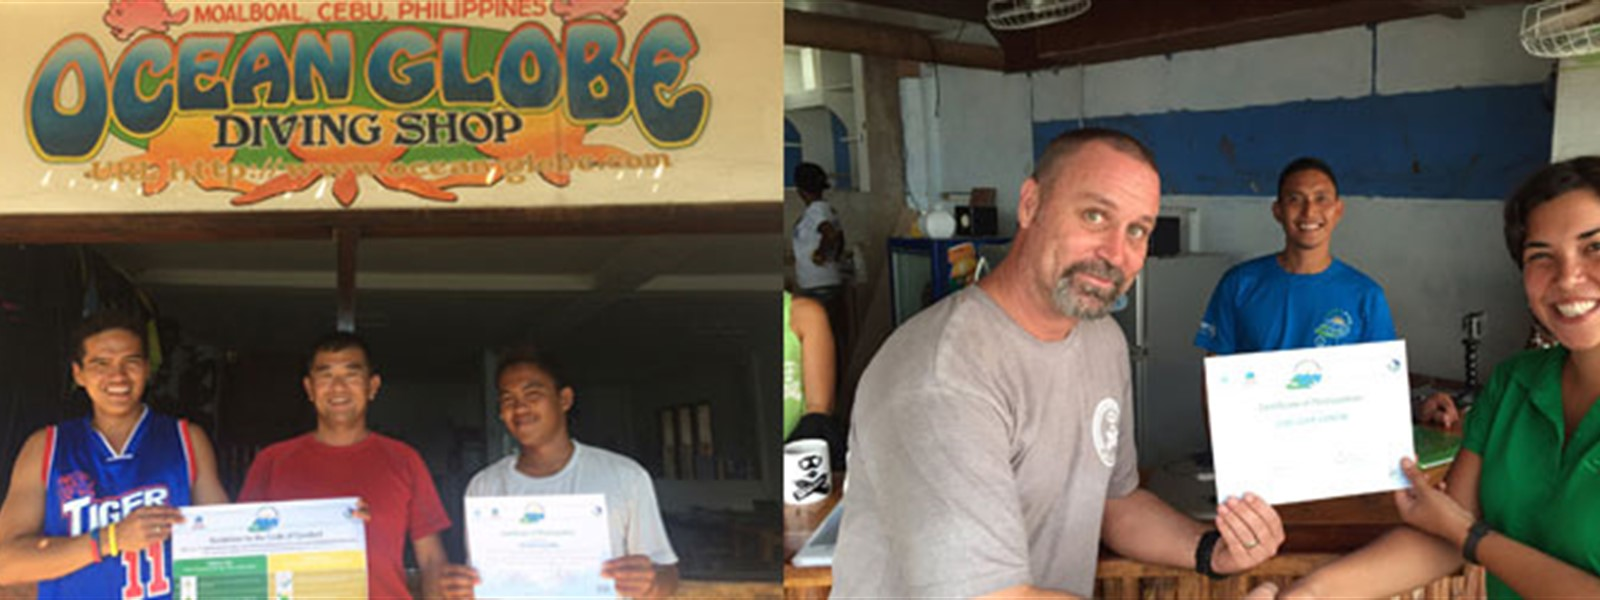 Picture of Green Fins assessors in Maolboal receiving their certificates from the Green Fins team.